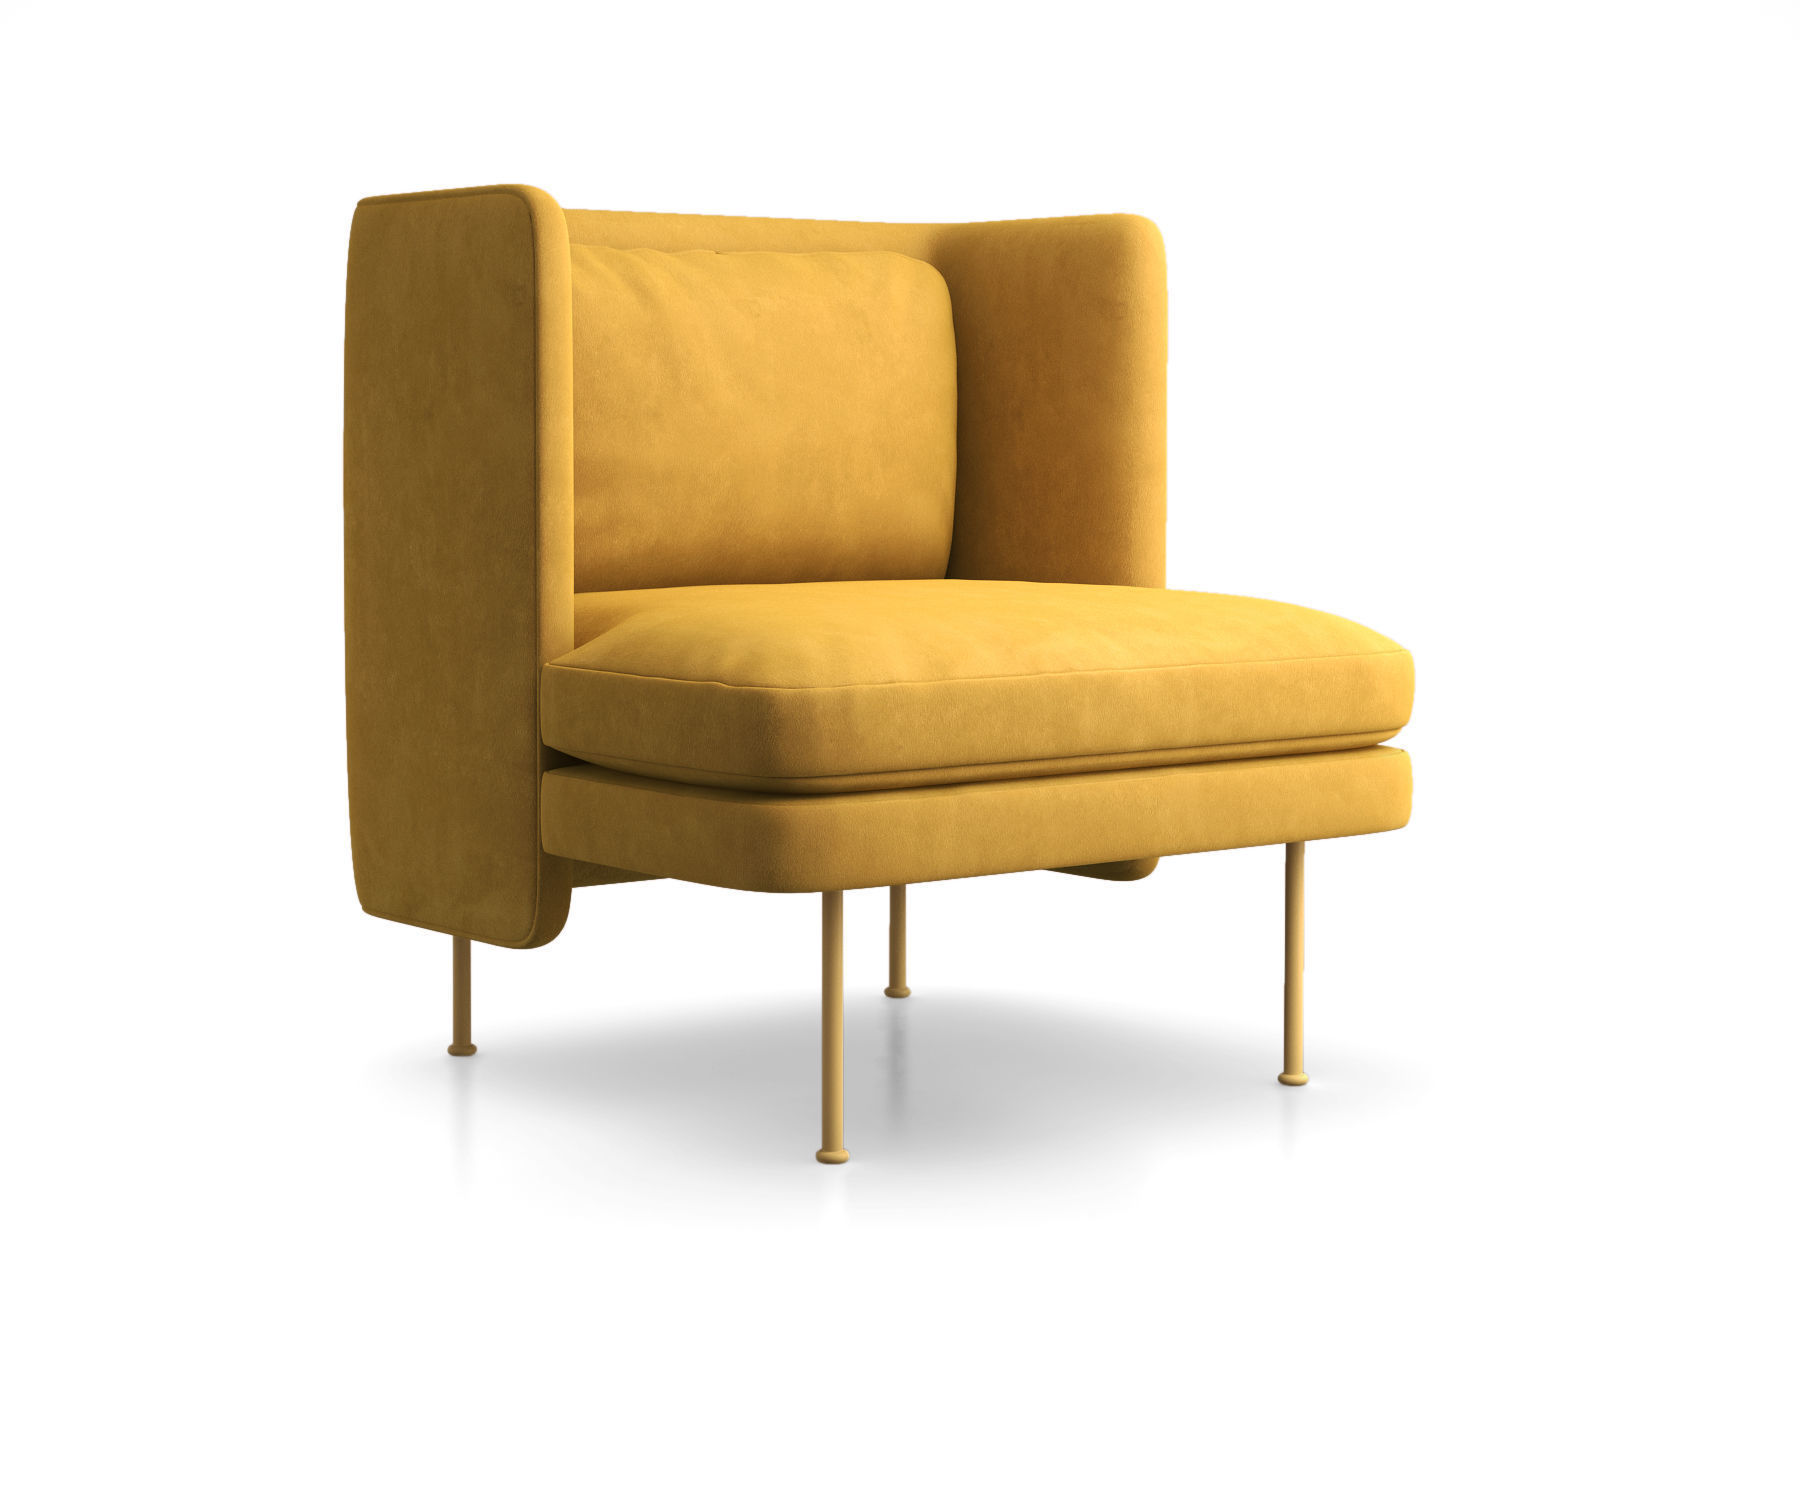 Cool Bloke Velvet Lounge Chair By Blu Dot 3D Model Ocoug Best Dining Table And Chair Ideas Images Ocougorg